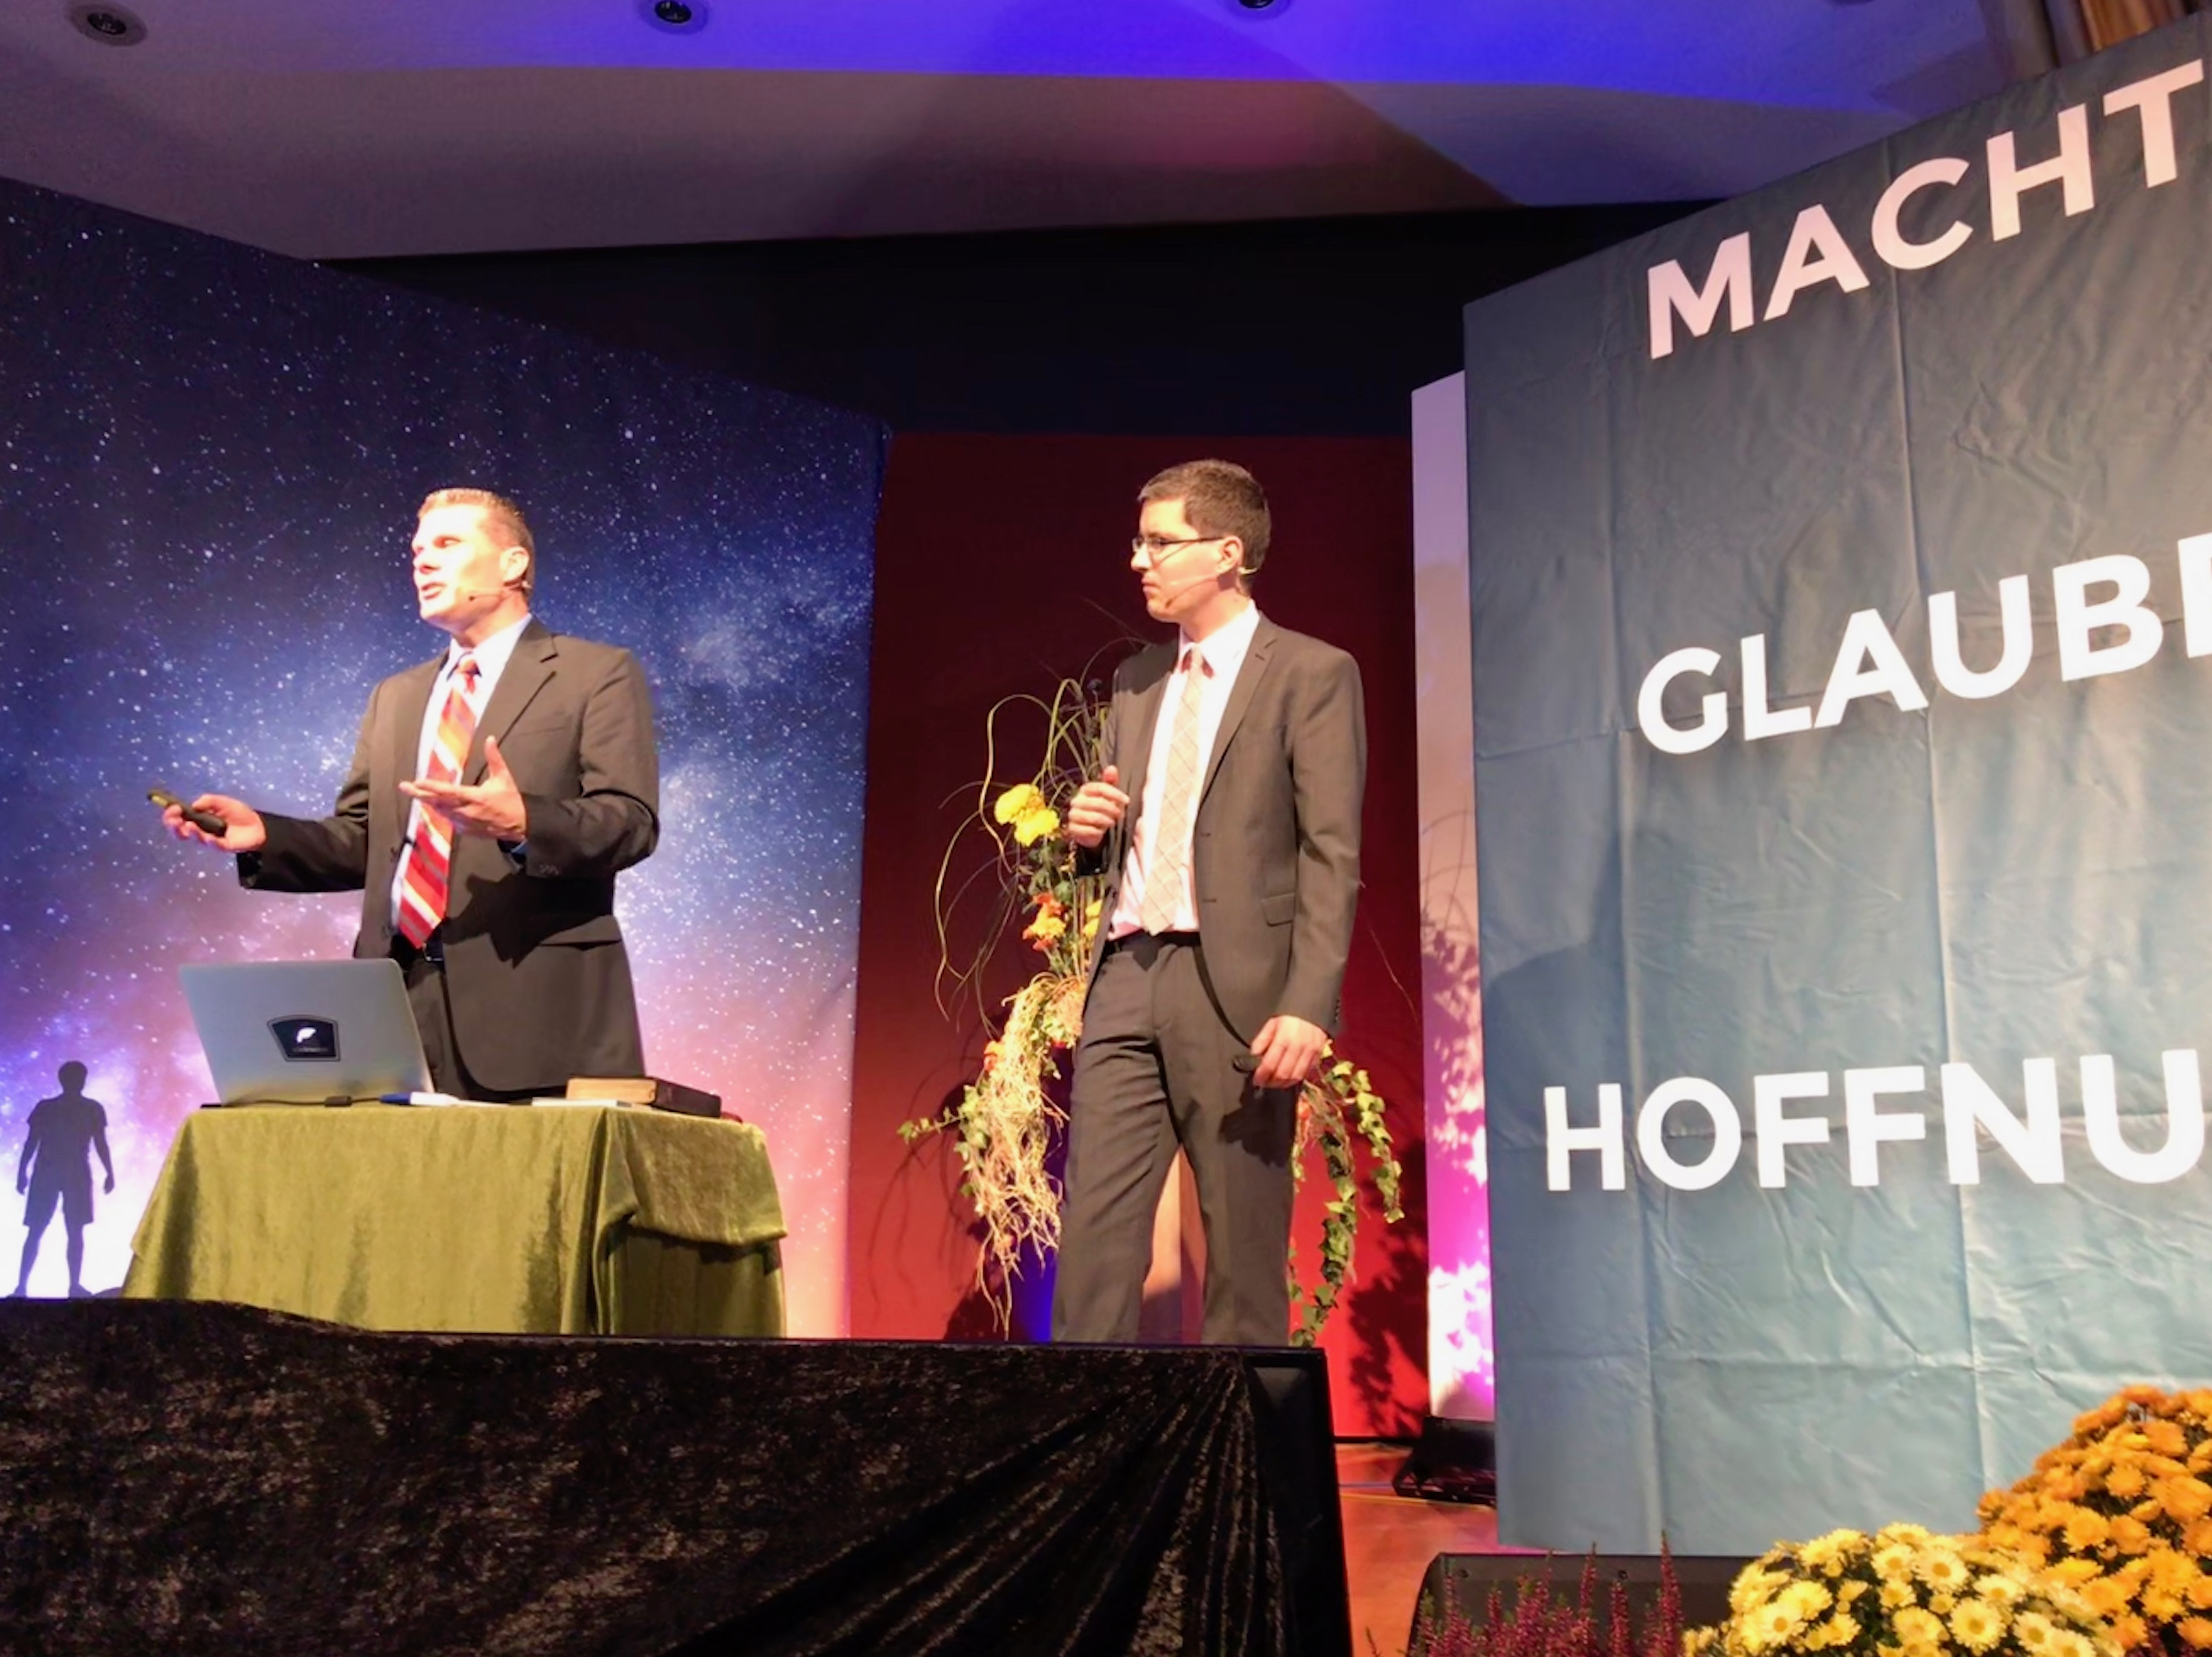 Pastor Eric Flickinger and his translator preach a sermon to the people of Stuttgart, Germany.